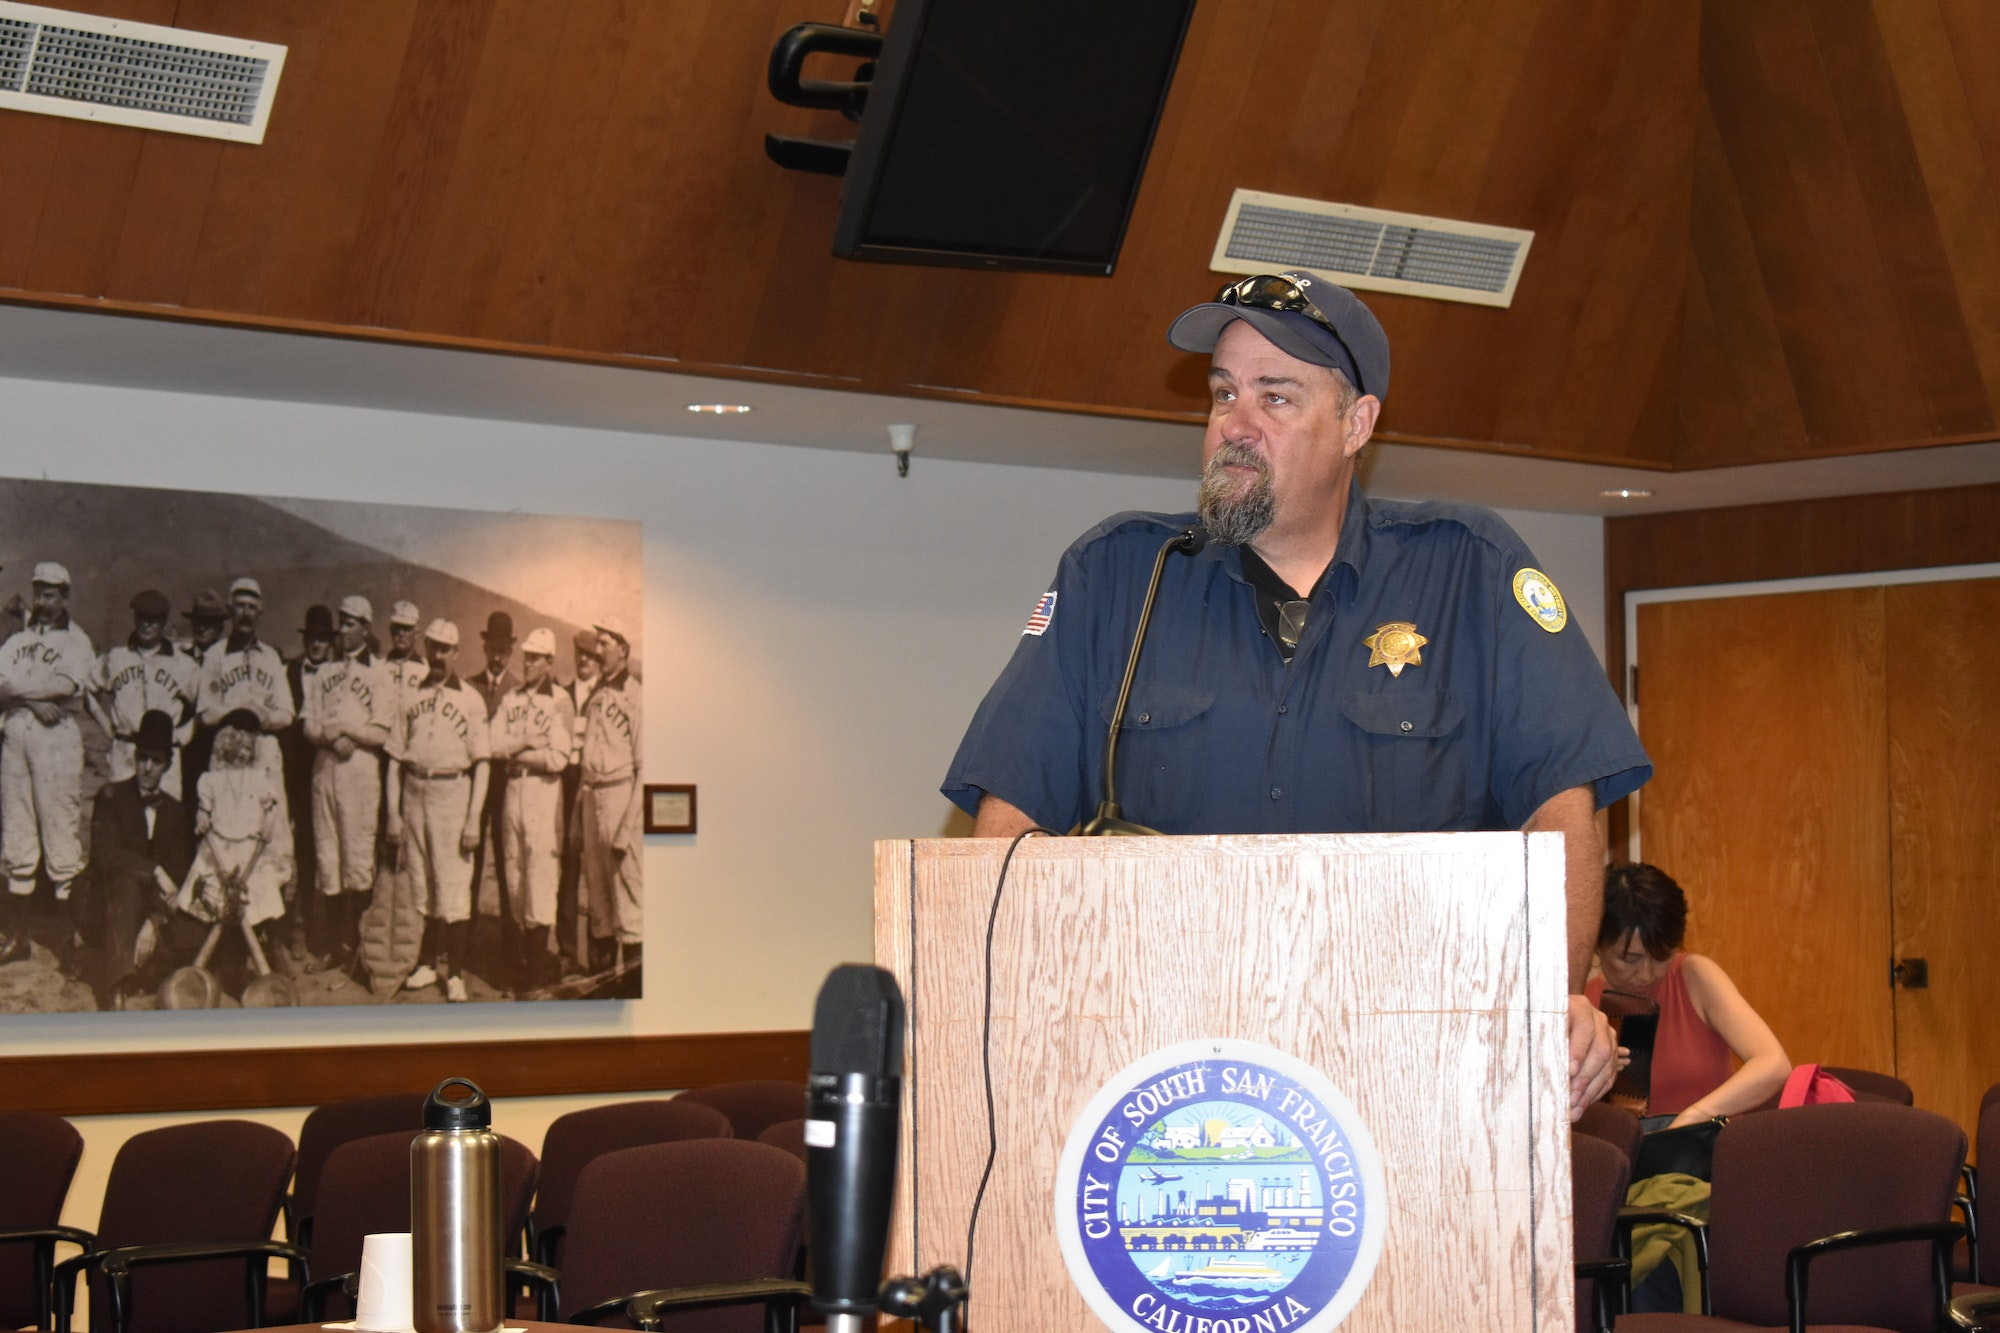 Asst. Harbormaster John Draper at podium